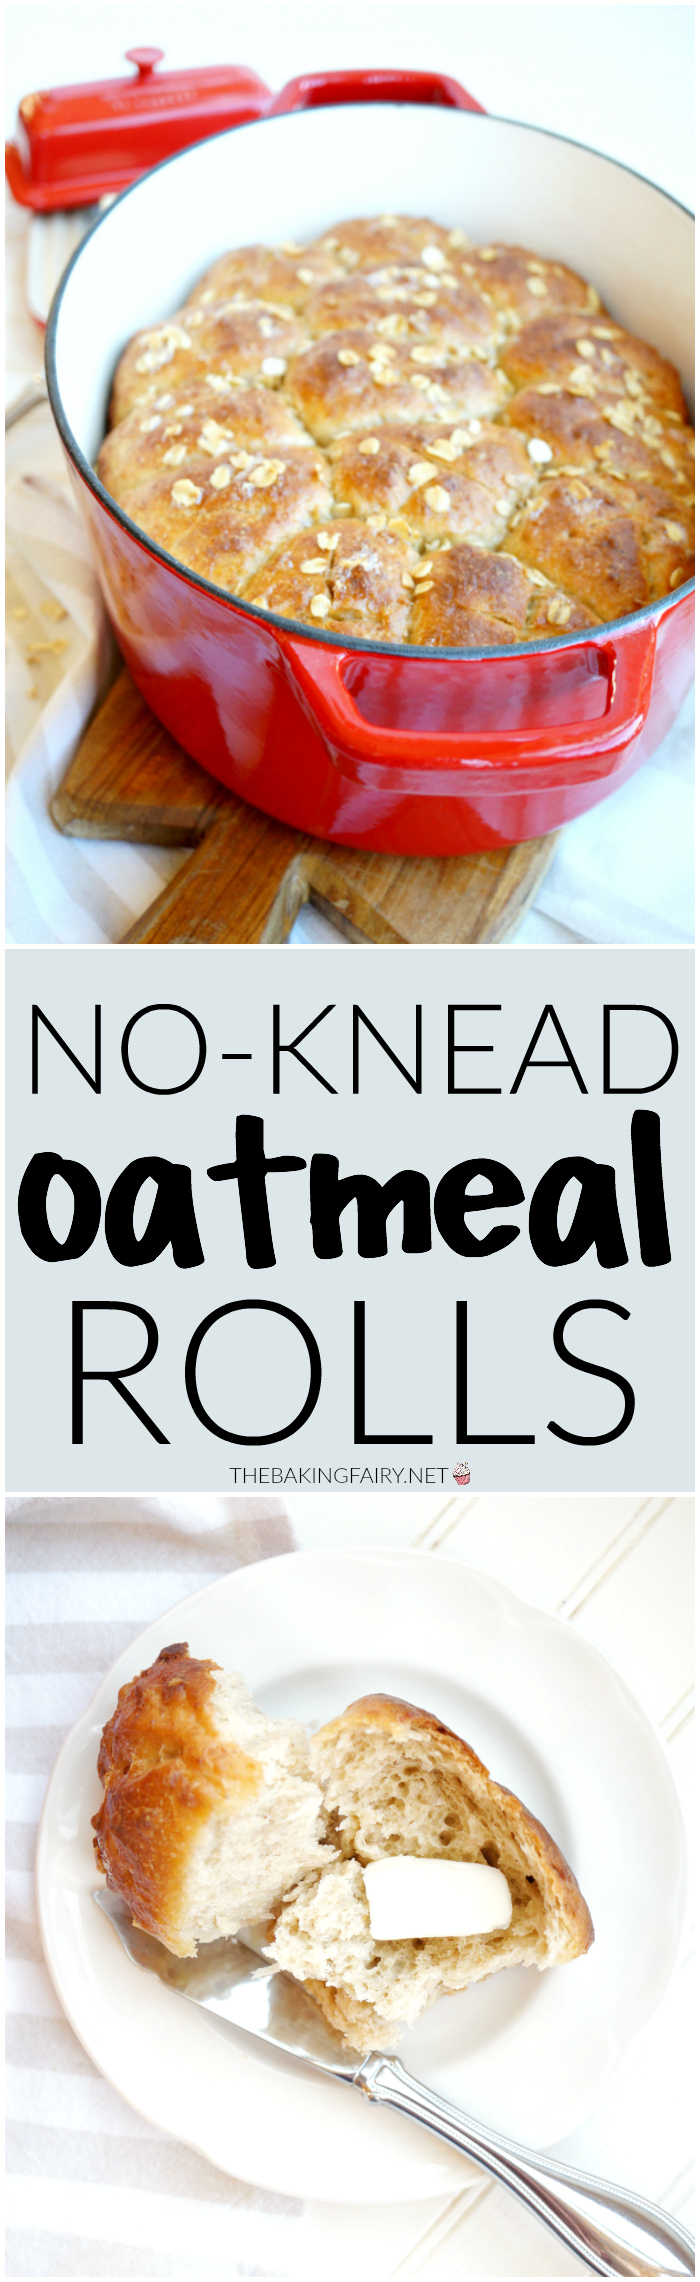 no-knead oatmeal rolls | The Baking Fairy